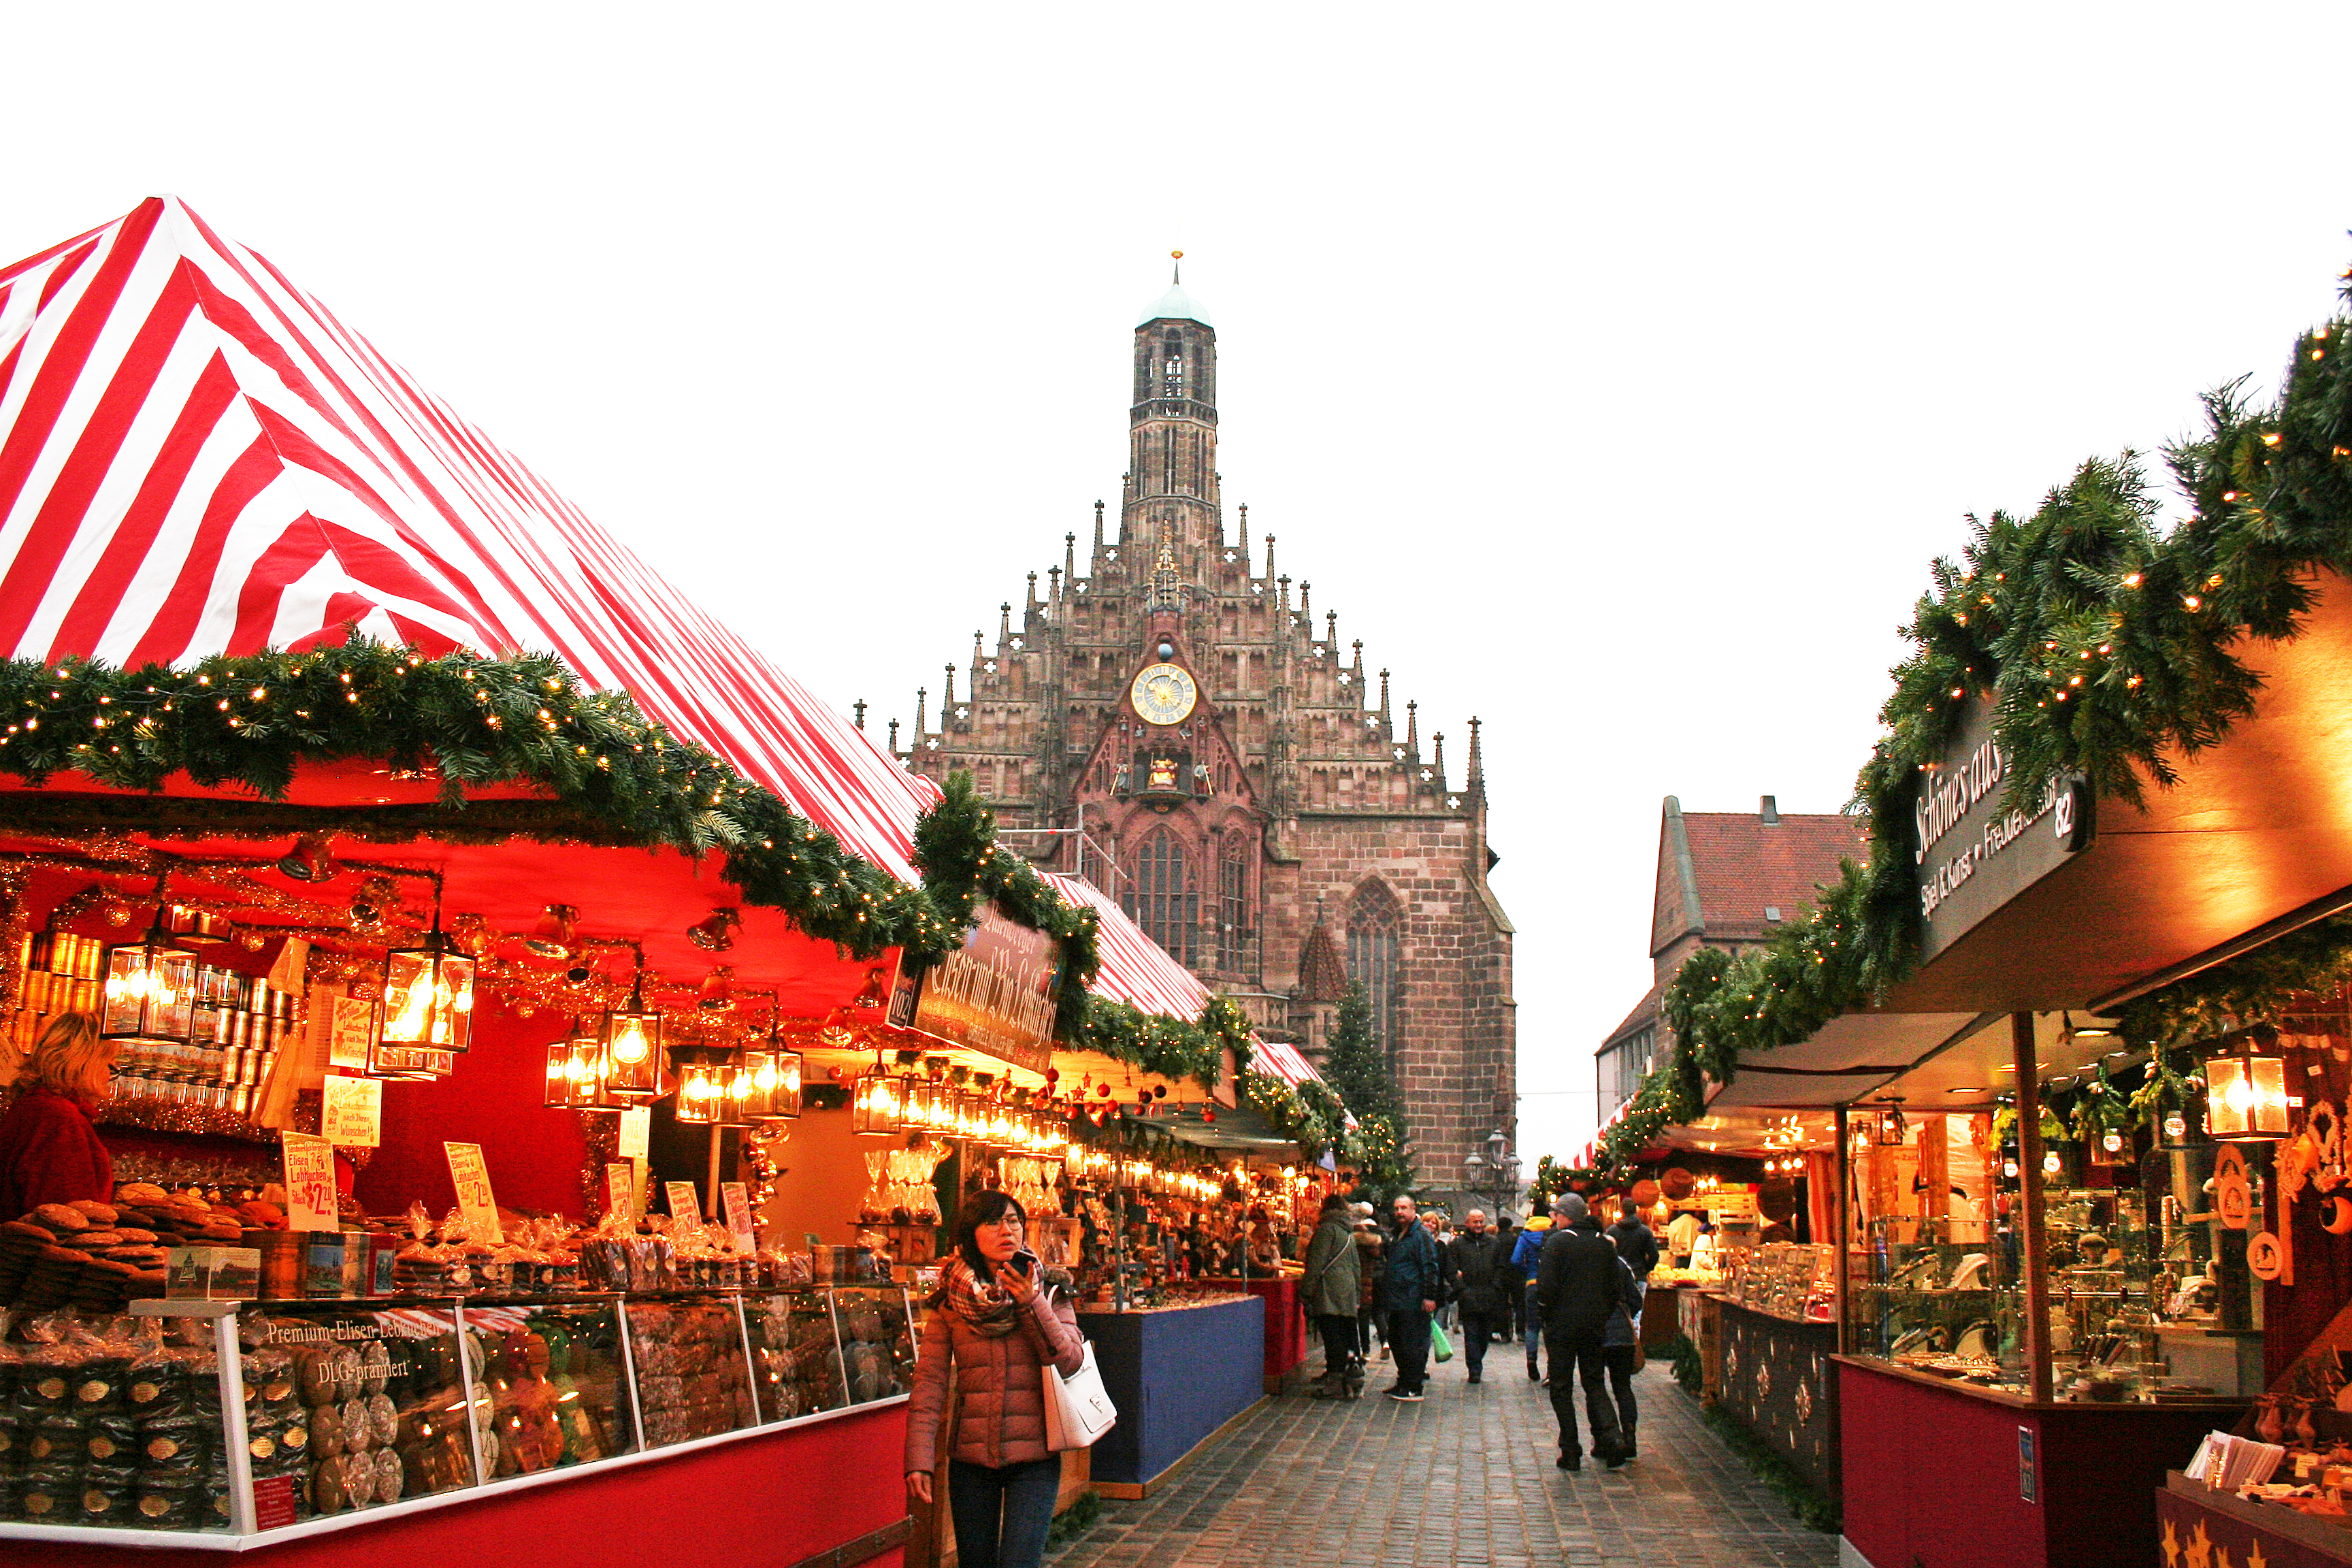 Nuremberg Christmas Market.The Nuremberg Christmas Market Christmas Market Travel Blog